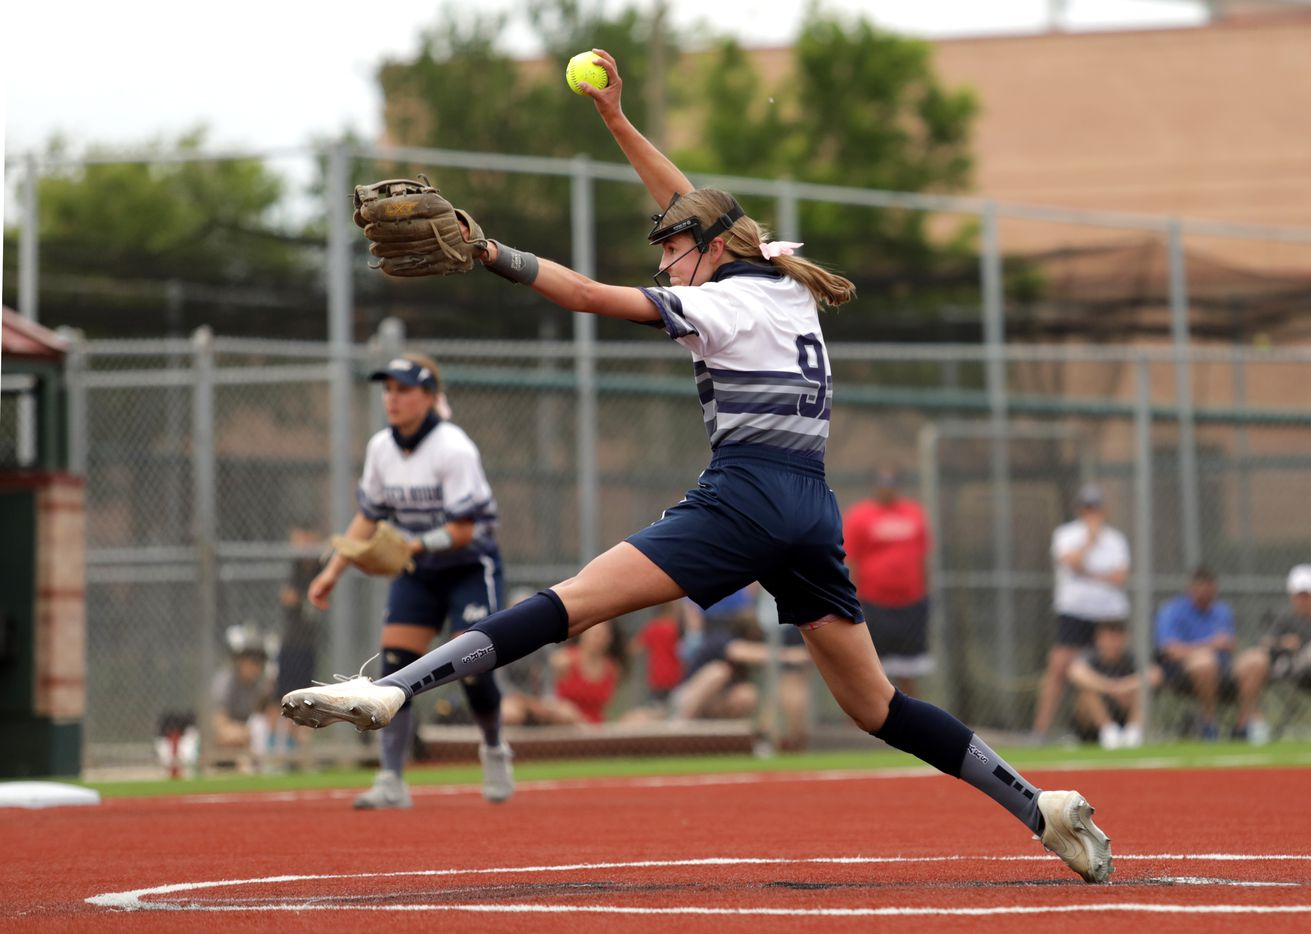 Flower Mound High School player #9, Abigail Jennings, pitches during a softball game against Allen High School at Allen High School in Allen, TX, on May 14, 2021. (Jason Janik/Special Contributor)